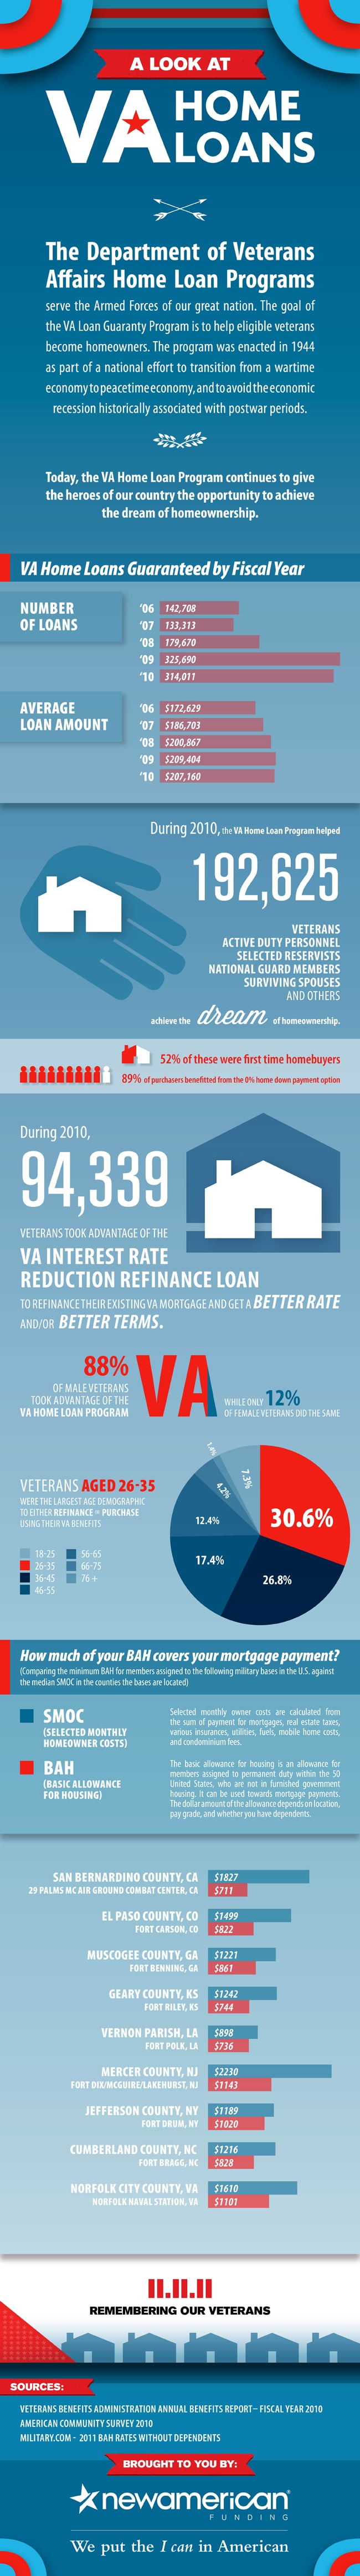 A Look at VA Home Loans